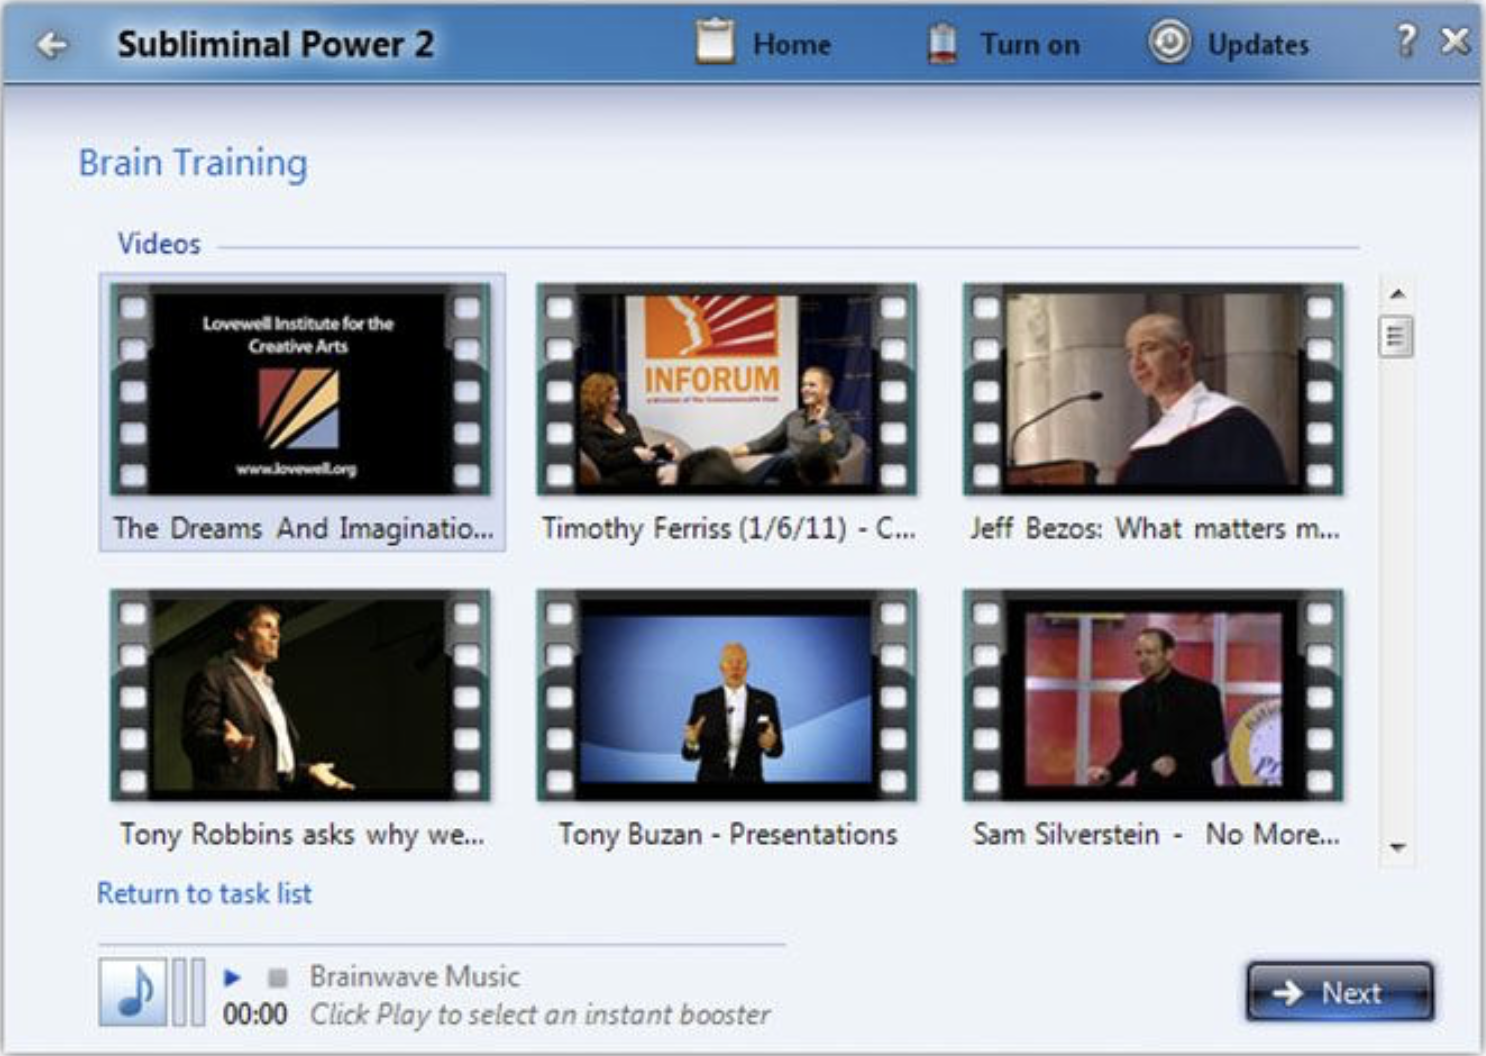 subliminal power 2 software